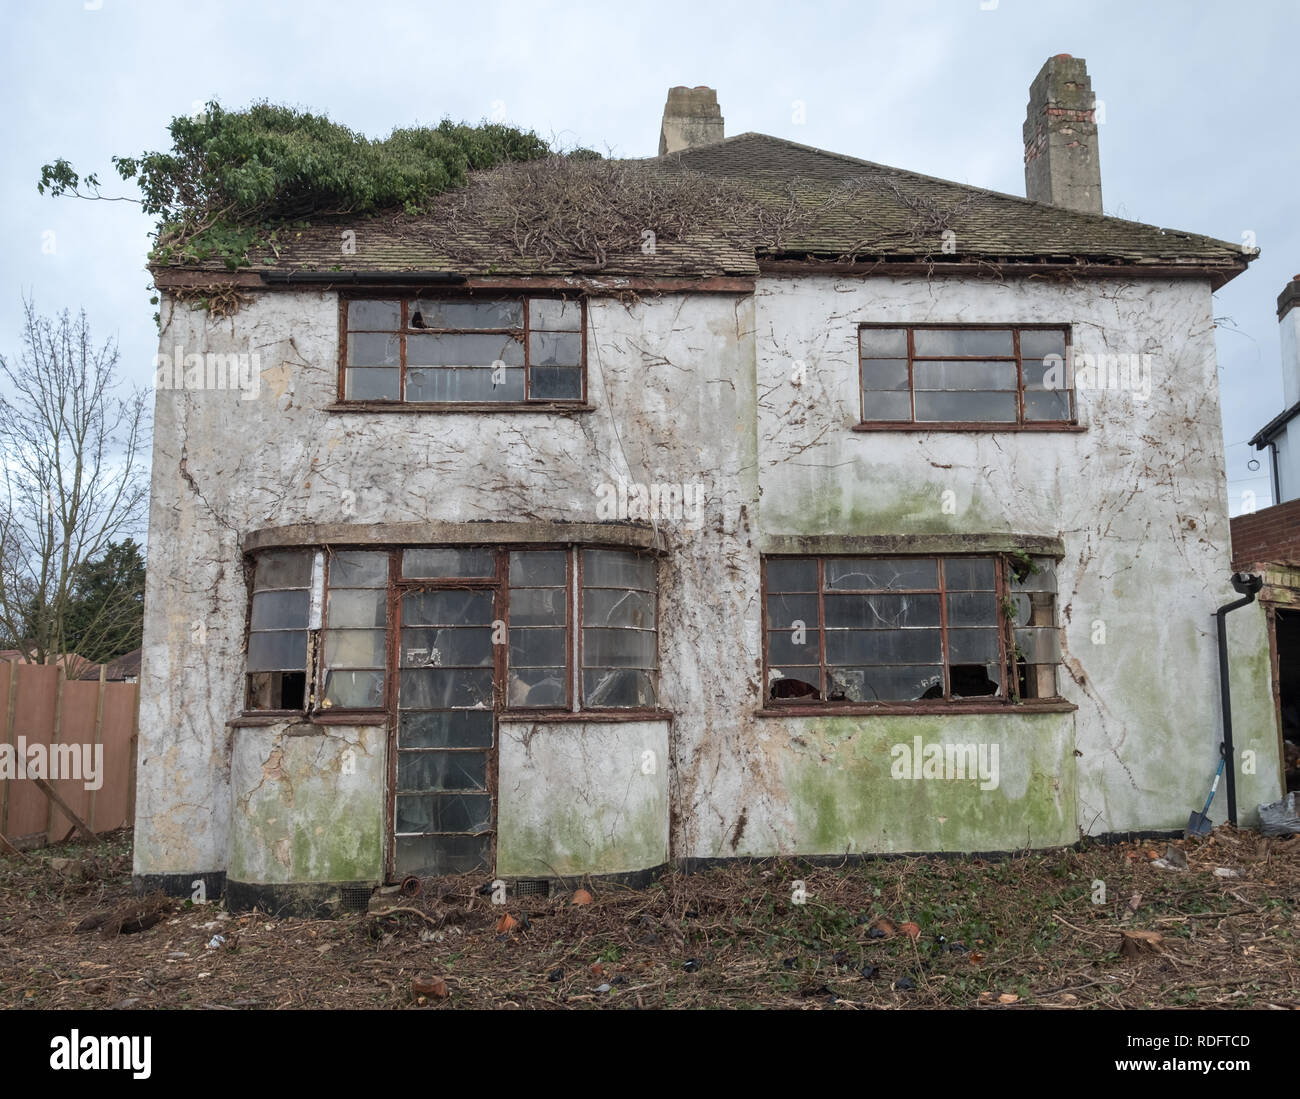 Exterior of derelict house built in 1930's deco style. House is due for demolition. Rayners lane, Harrow Middlesex UK - Stock Image